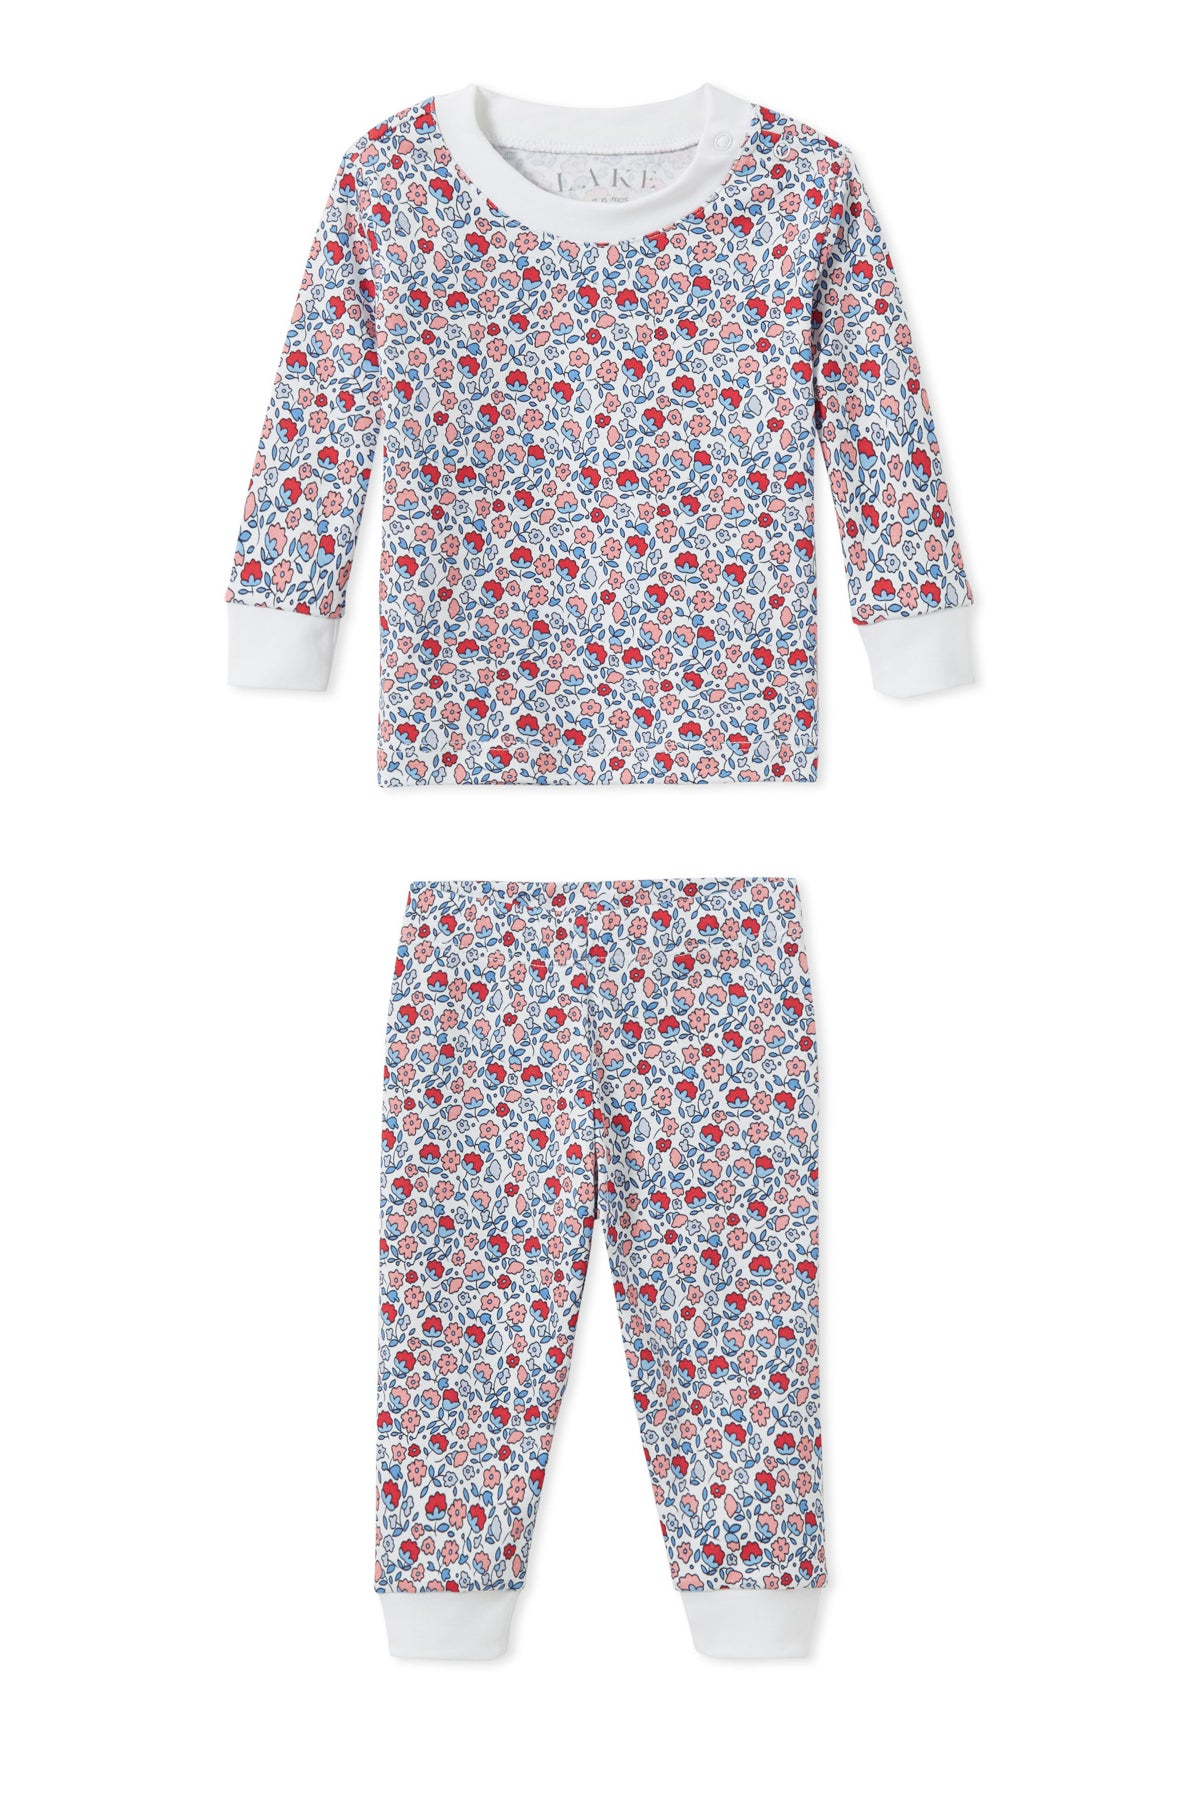 minnow x LAKE Baby Long-Long Set in Americana Floral